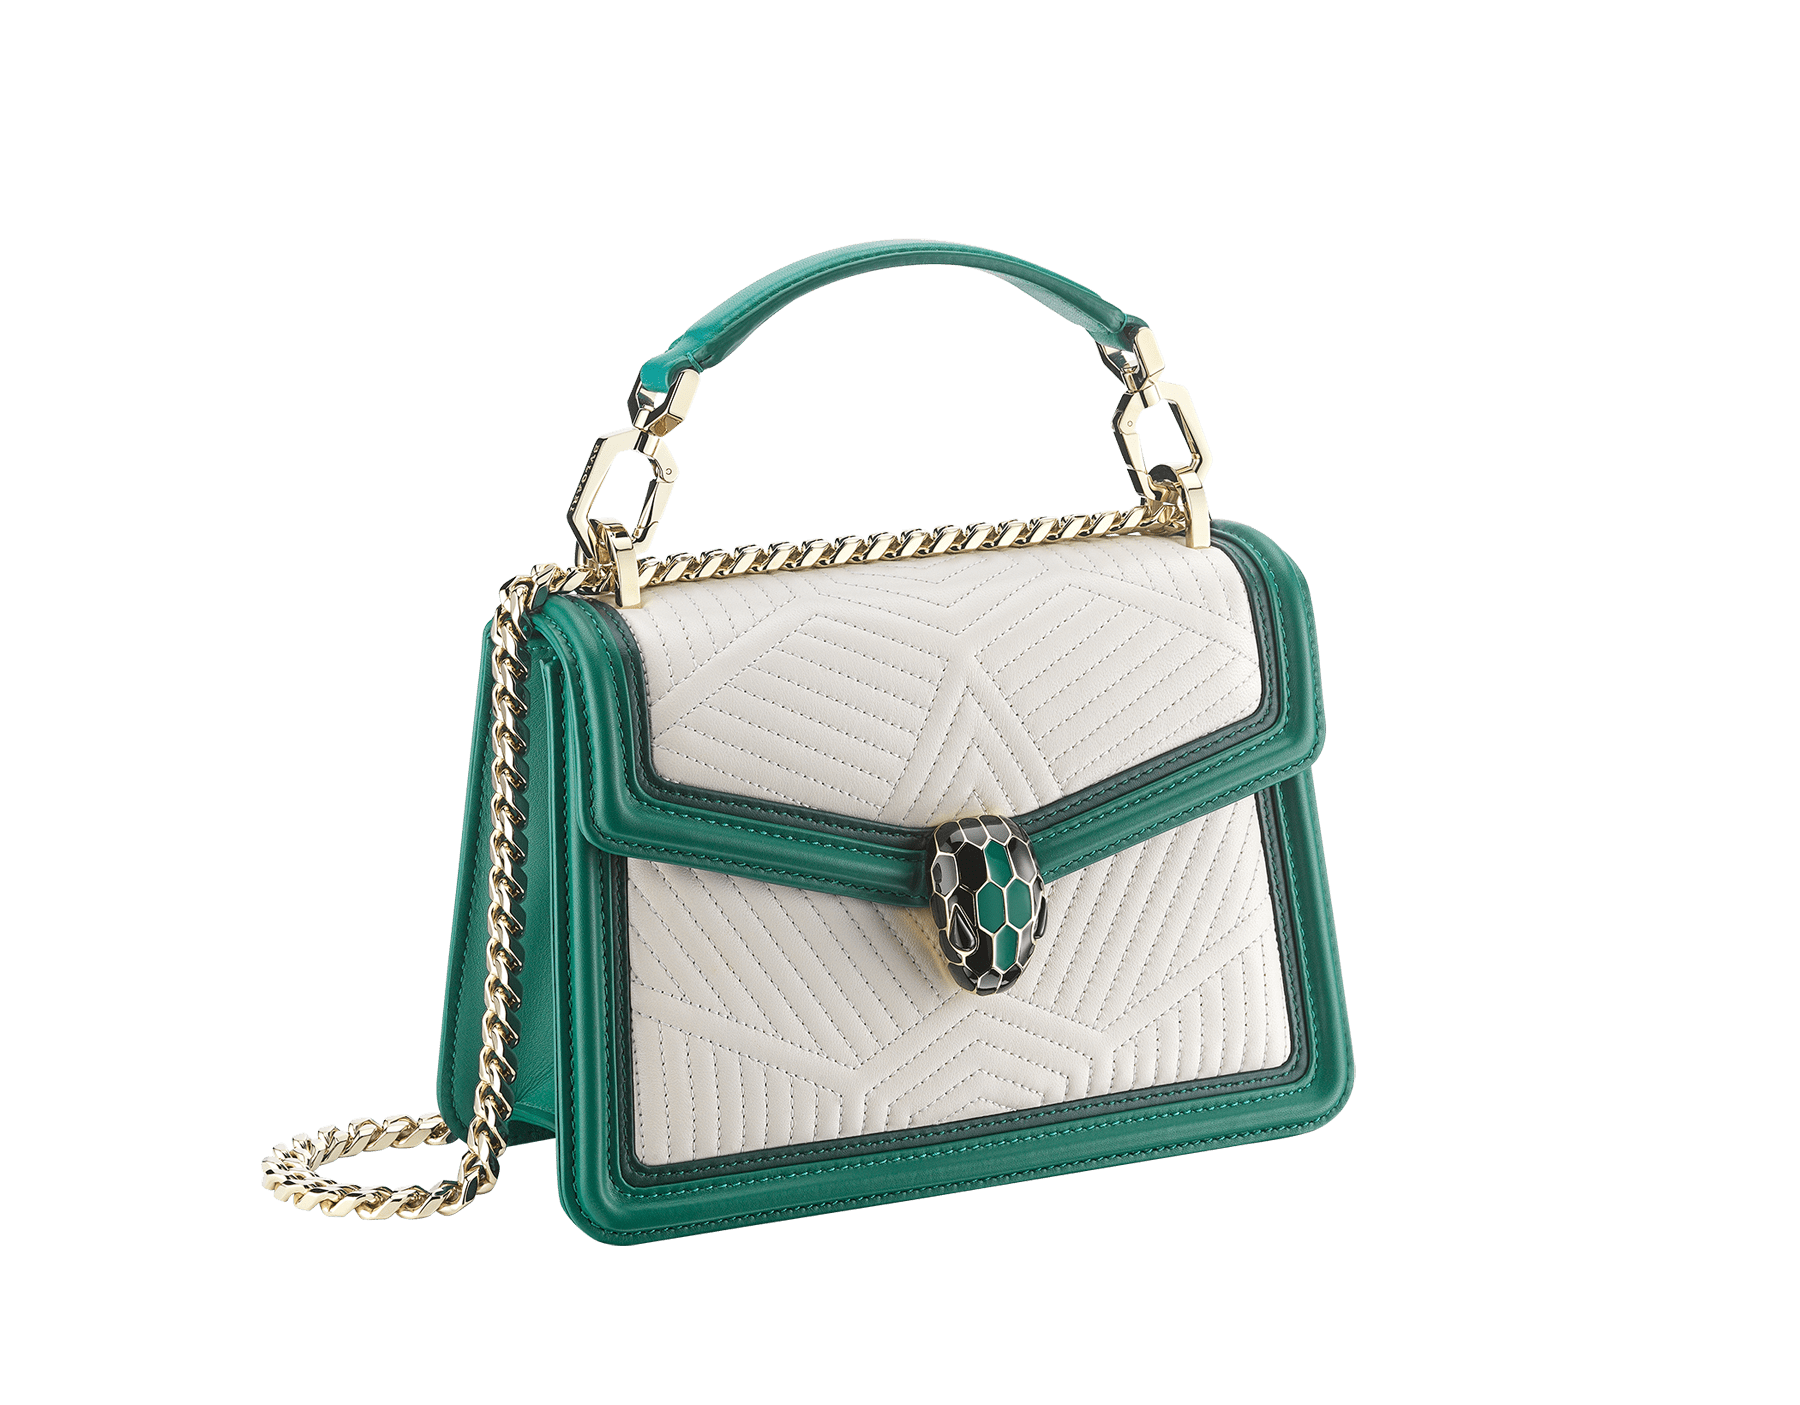 """""""Serpenti Diamond Blast"""" crossbody bag in mimetic jade quilted nappa leather and mimetic jade smooth calf leather frames. Tempting snakehead closure in light gold plated brass enriched with matte black and shiny mimetic jade enamel and black onyx eyes. 1063-FQDb image 2"""